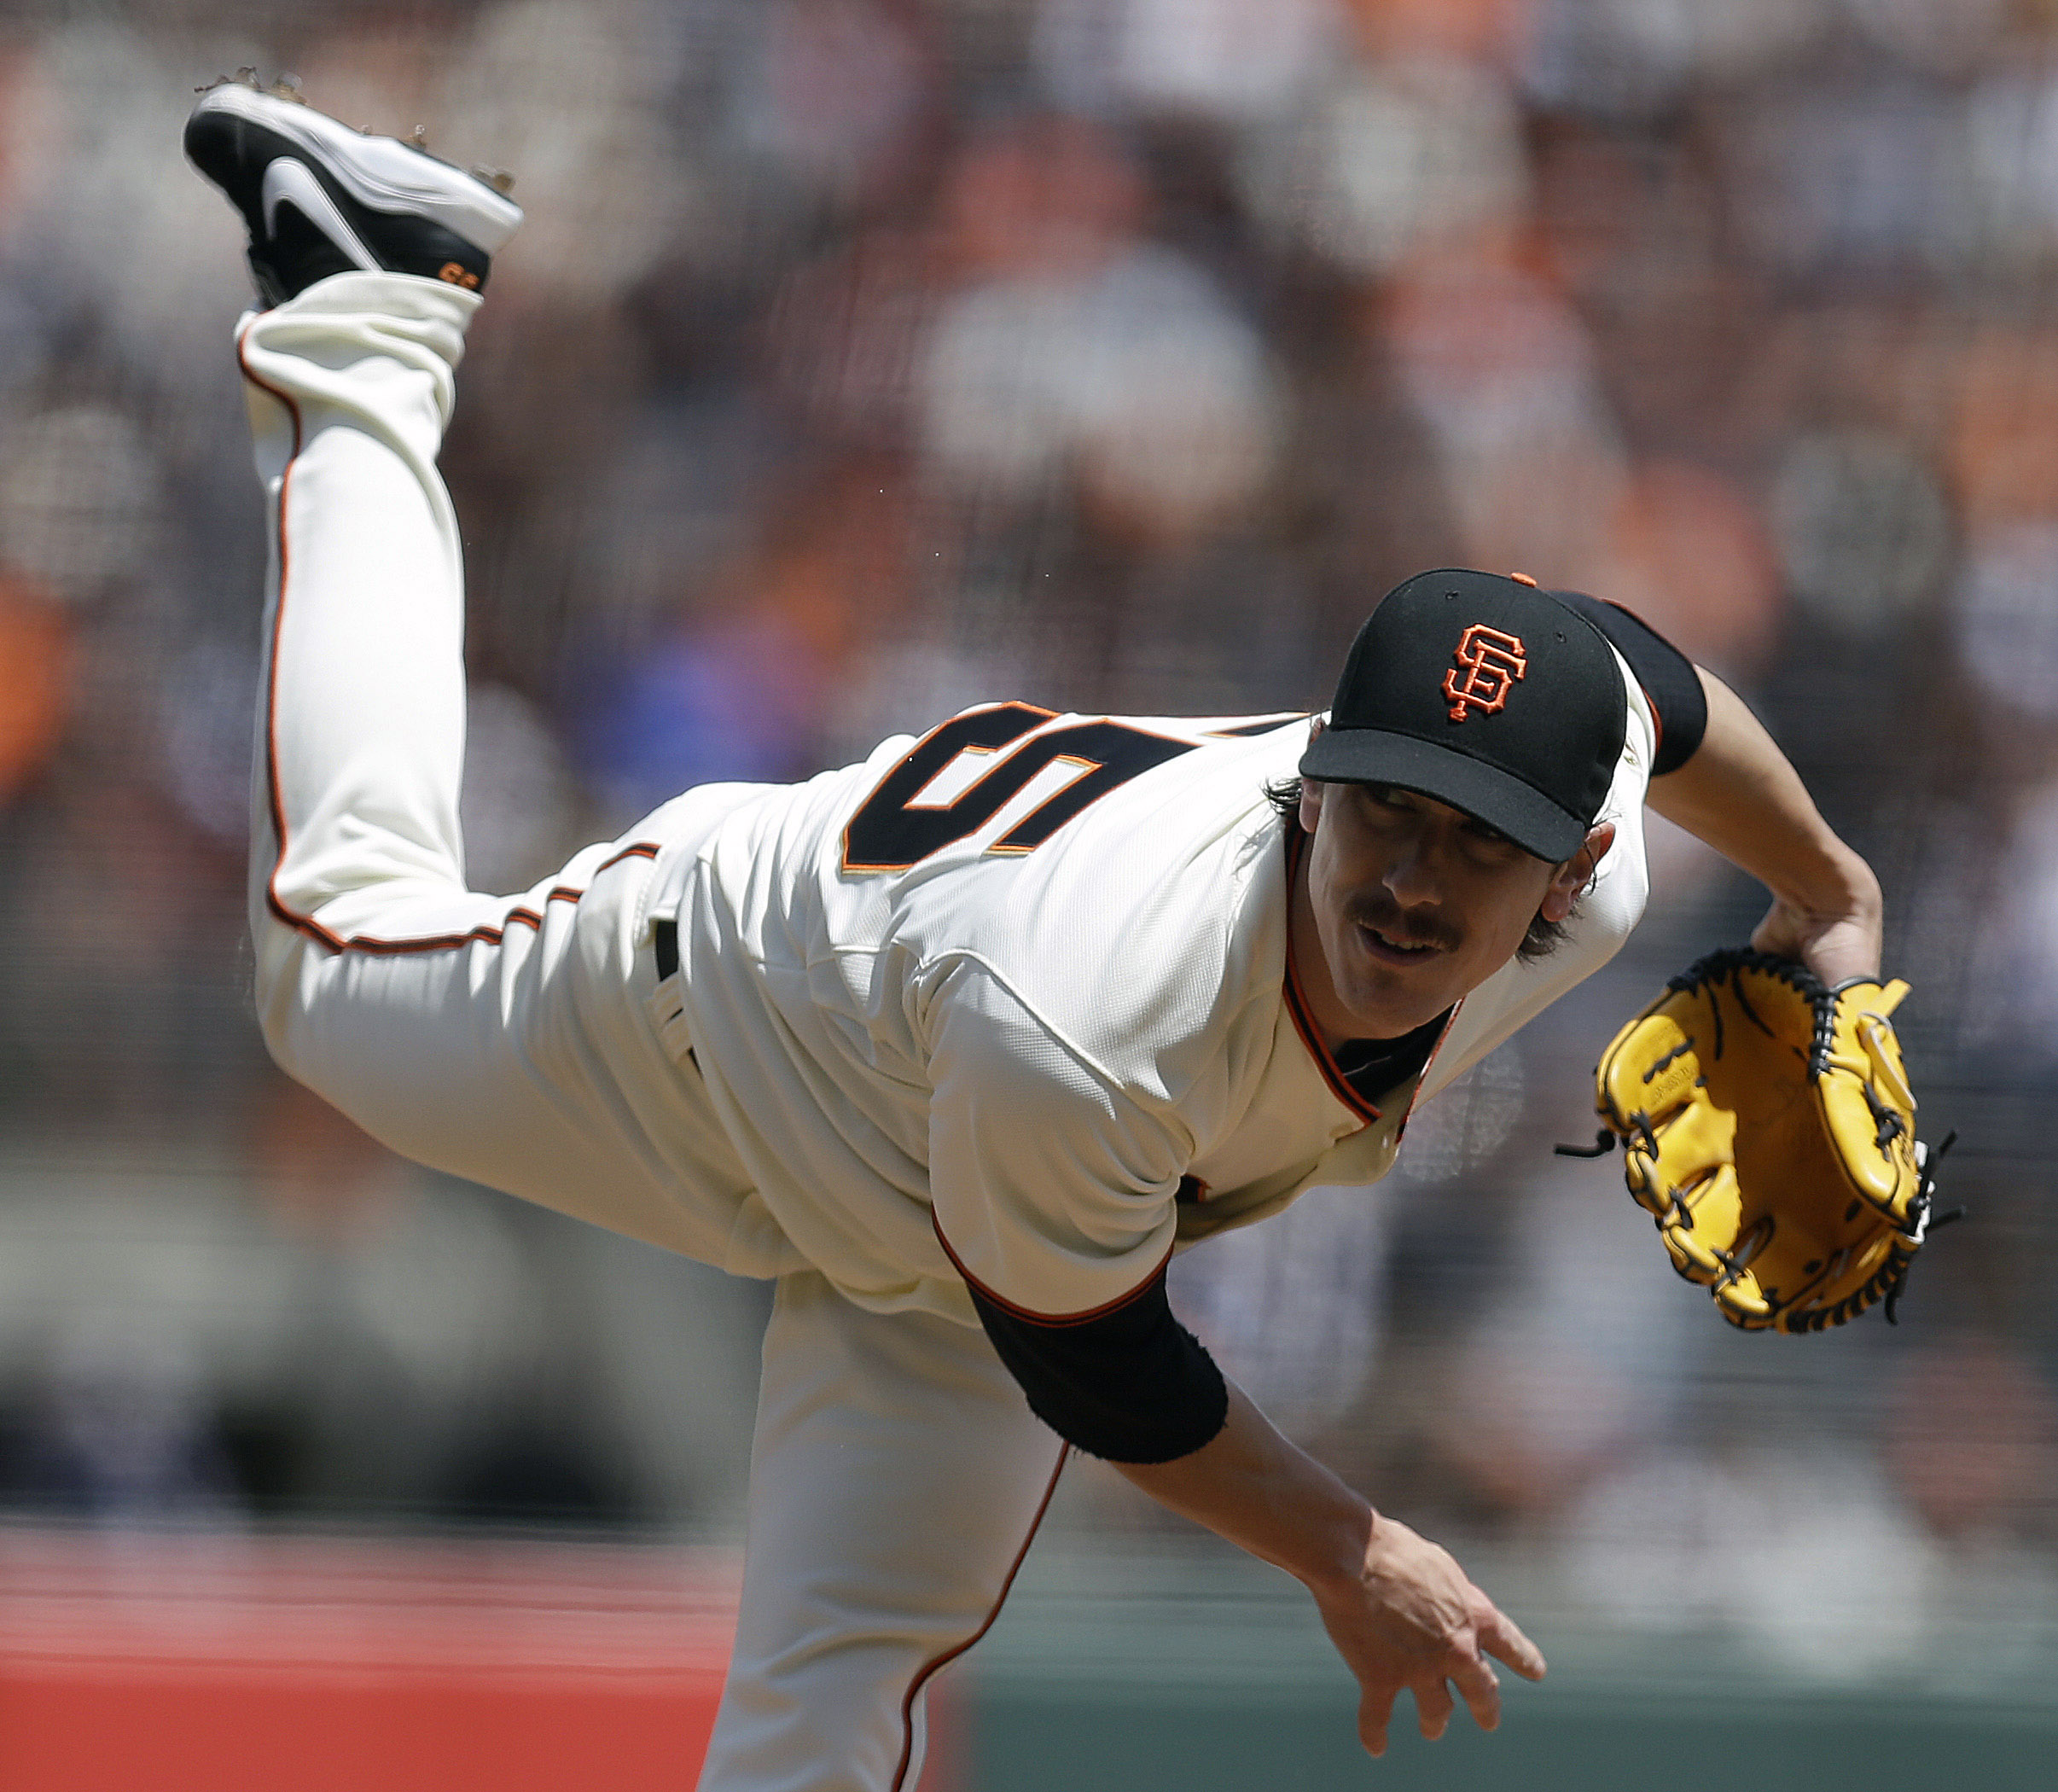 San Francisco Giants' Tim Lincecum works against the Cleveland Indians in the first inning of a baseball game on Saturday, April 26, 2014, in San Francisco